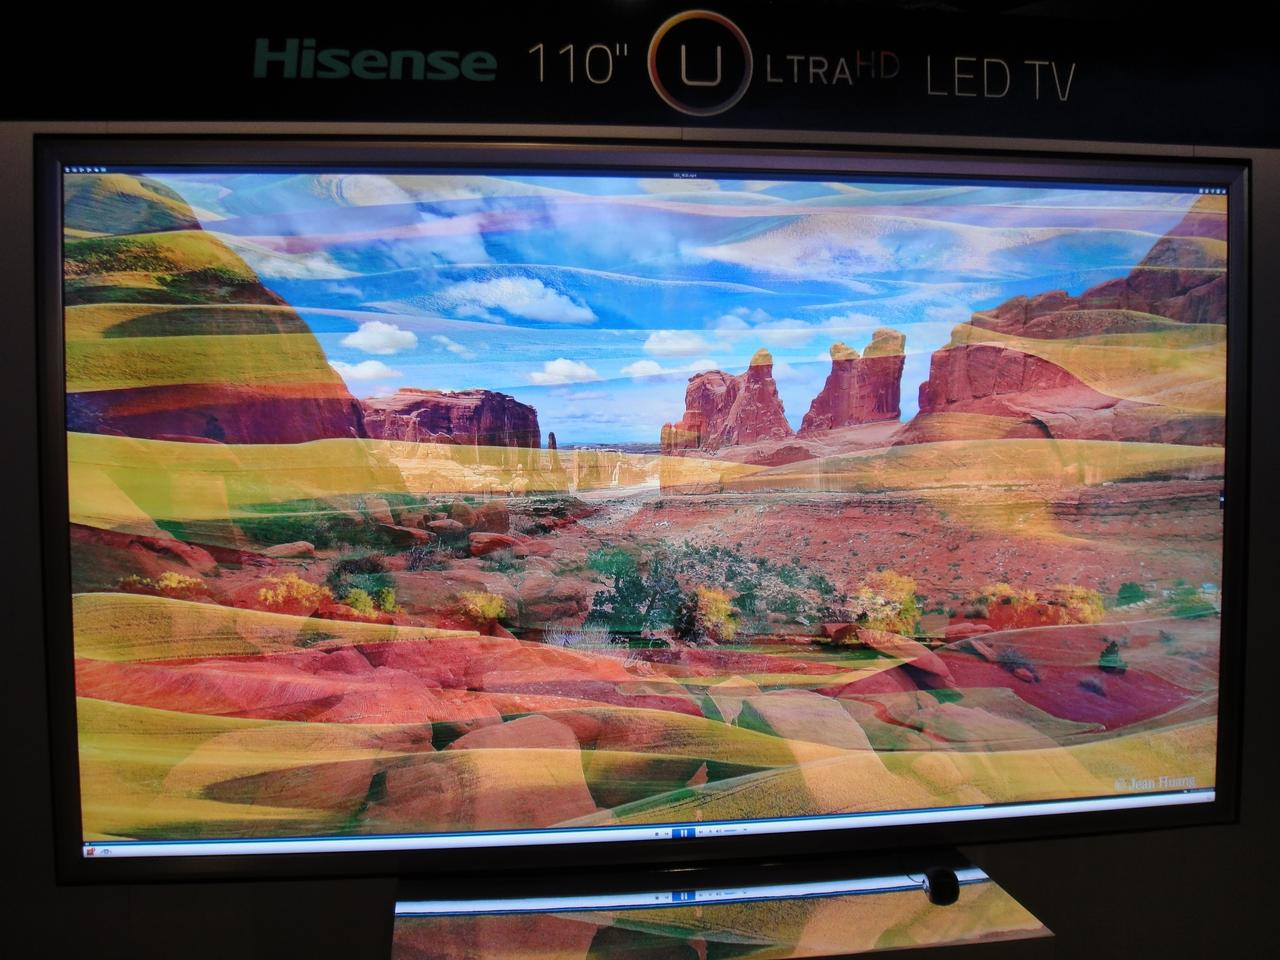 "Hisense revealed a new line of Ultra-HD LED TVs in 65"", 84"", 110"" sizes at CES 2013"